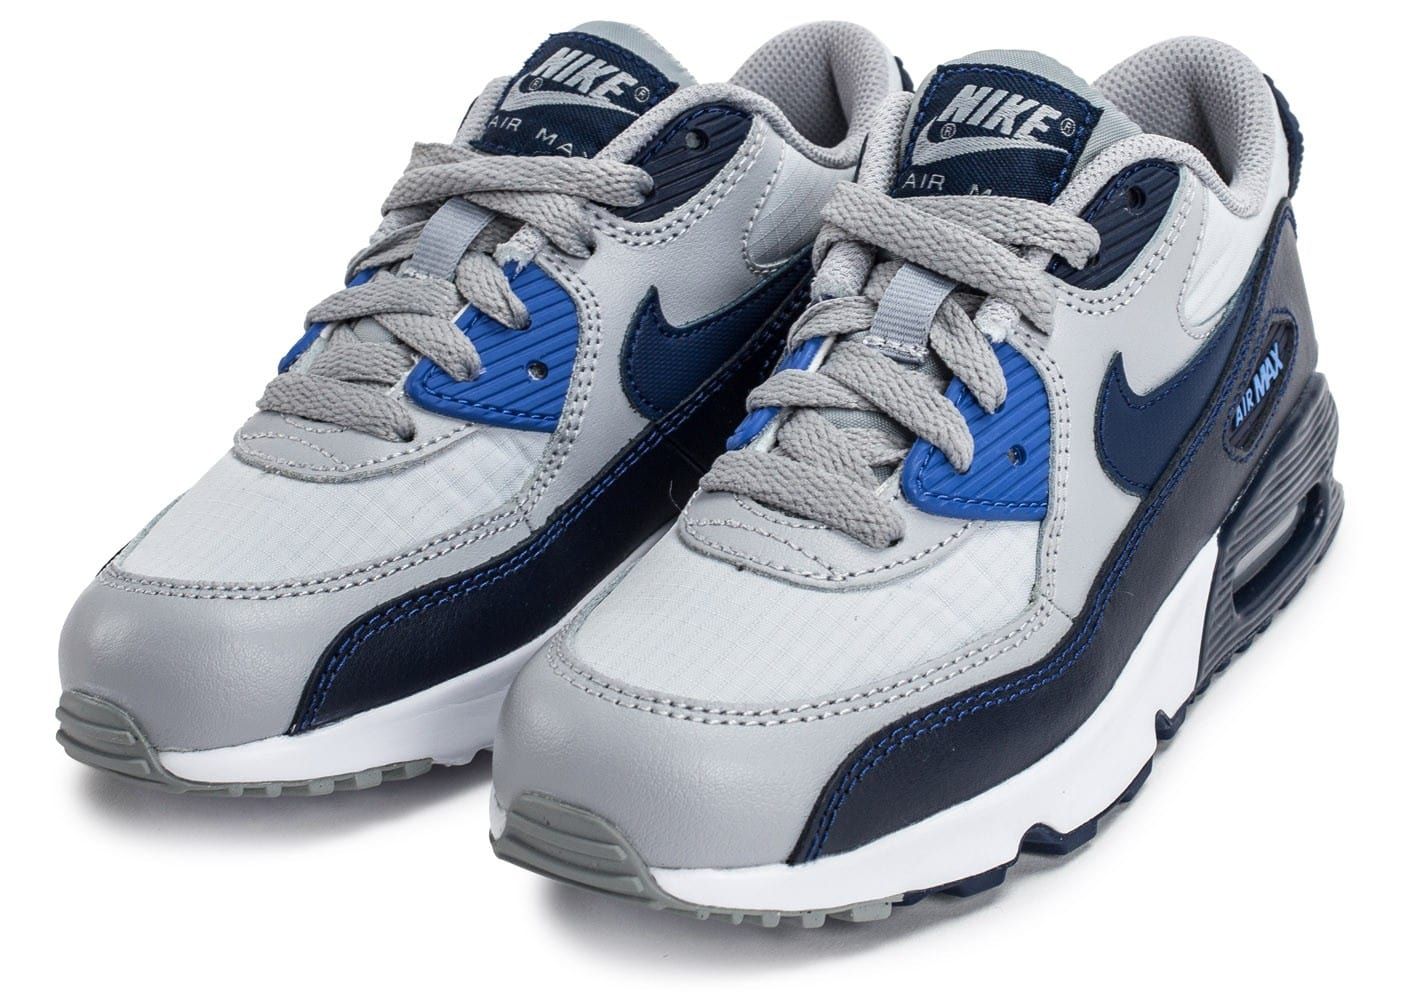 nike air max 90 mesh enfant grise et bleue chaussures enfant chausport. Black Bedroom Furniture Sets. Home Design Ideas